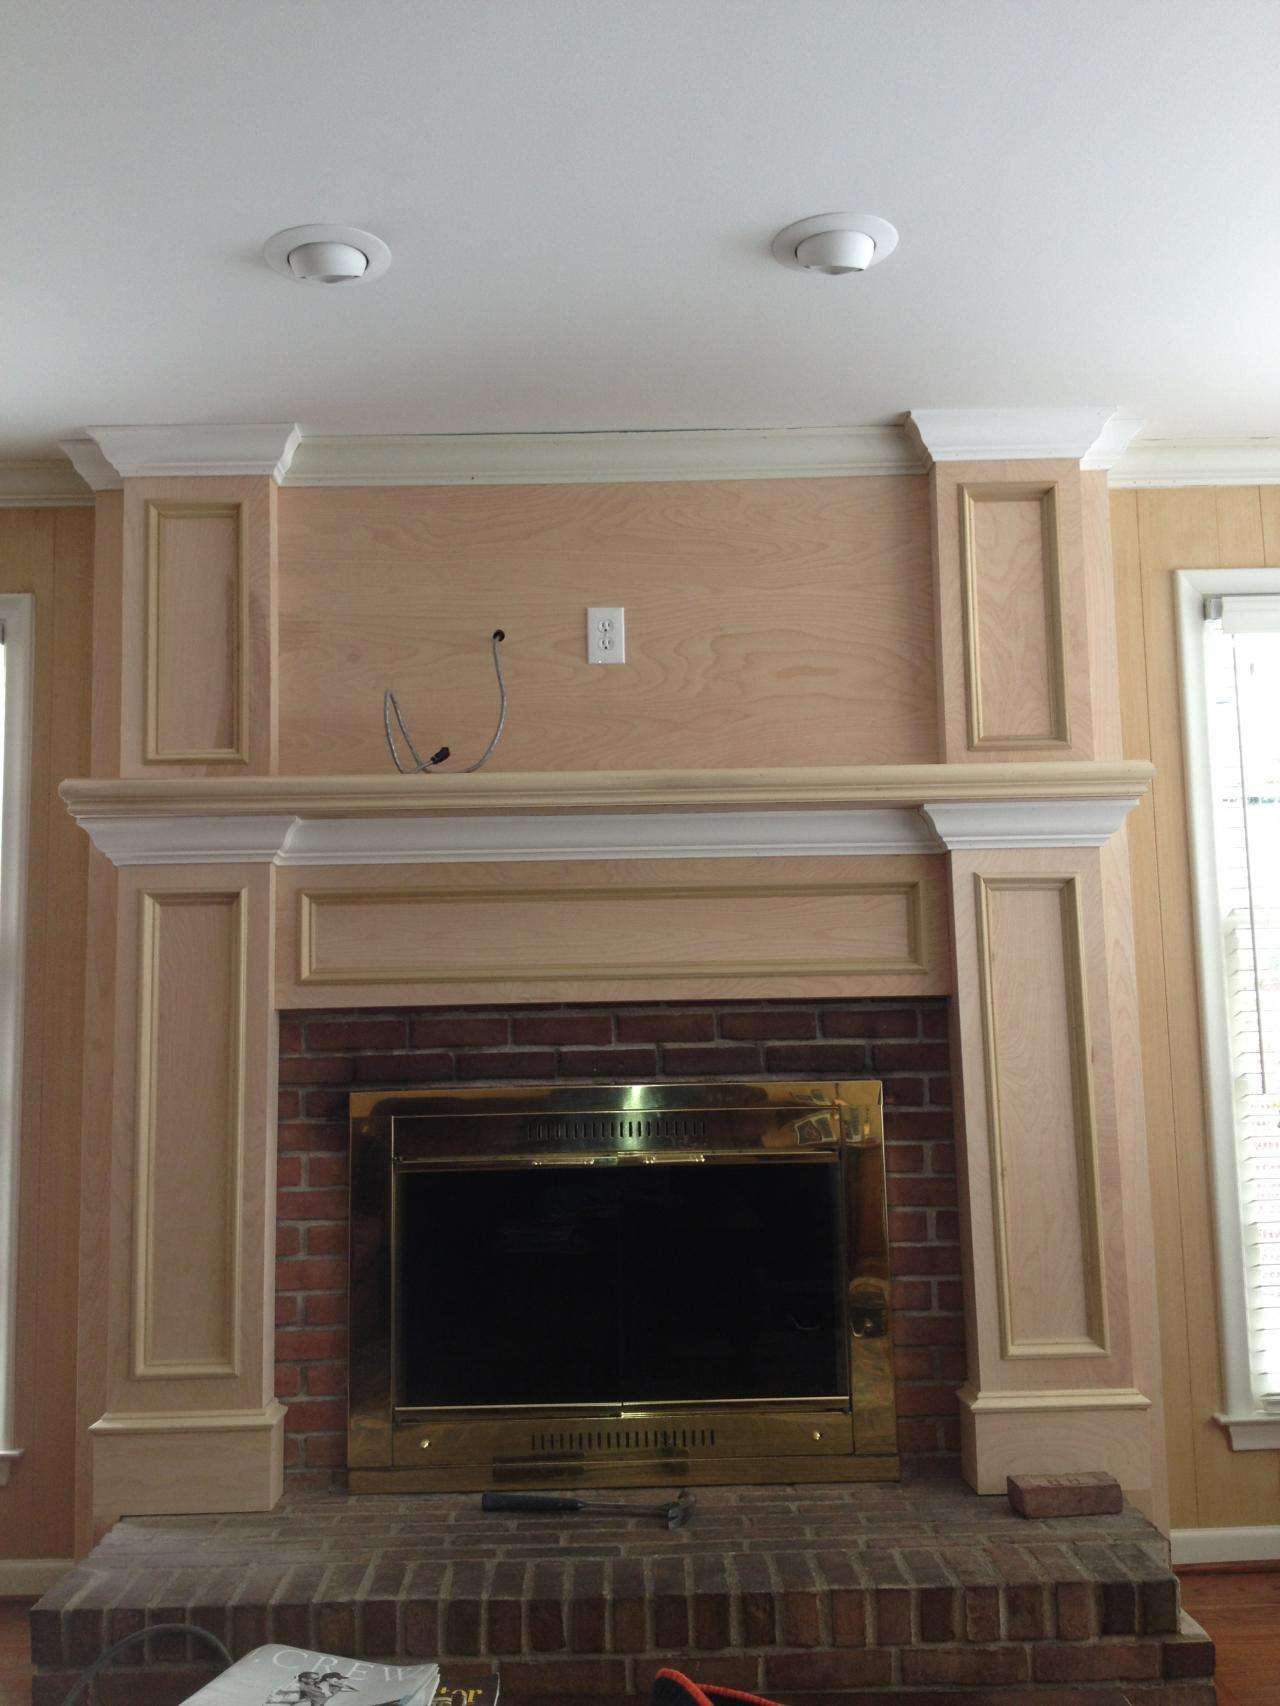 heater fireplaces know burner with fireplace flueless wooden to indoor wood have mantels you tips